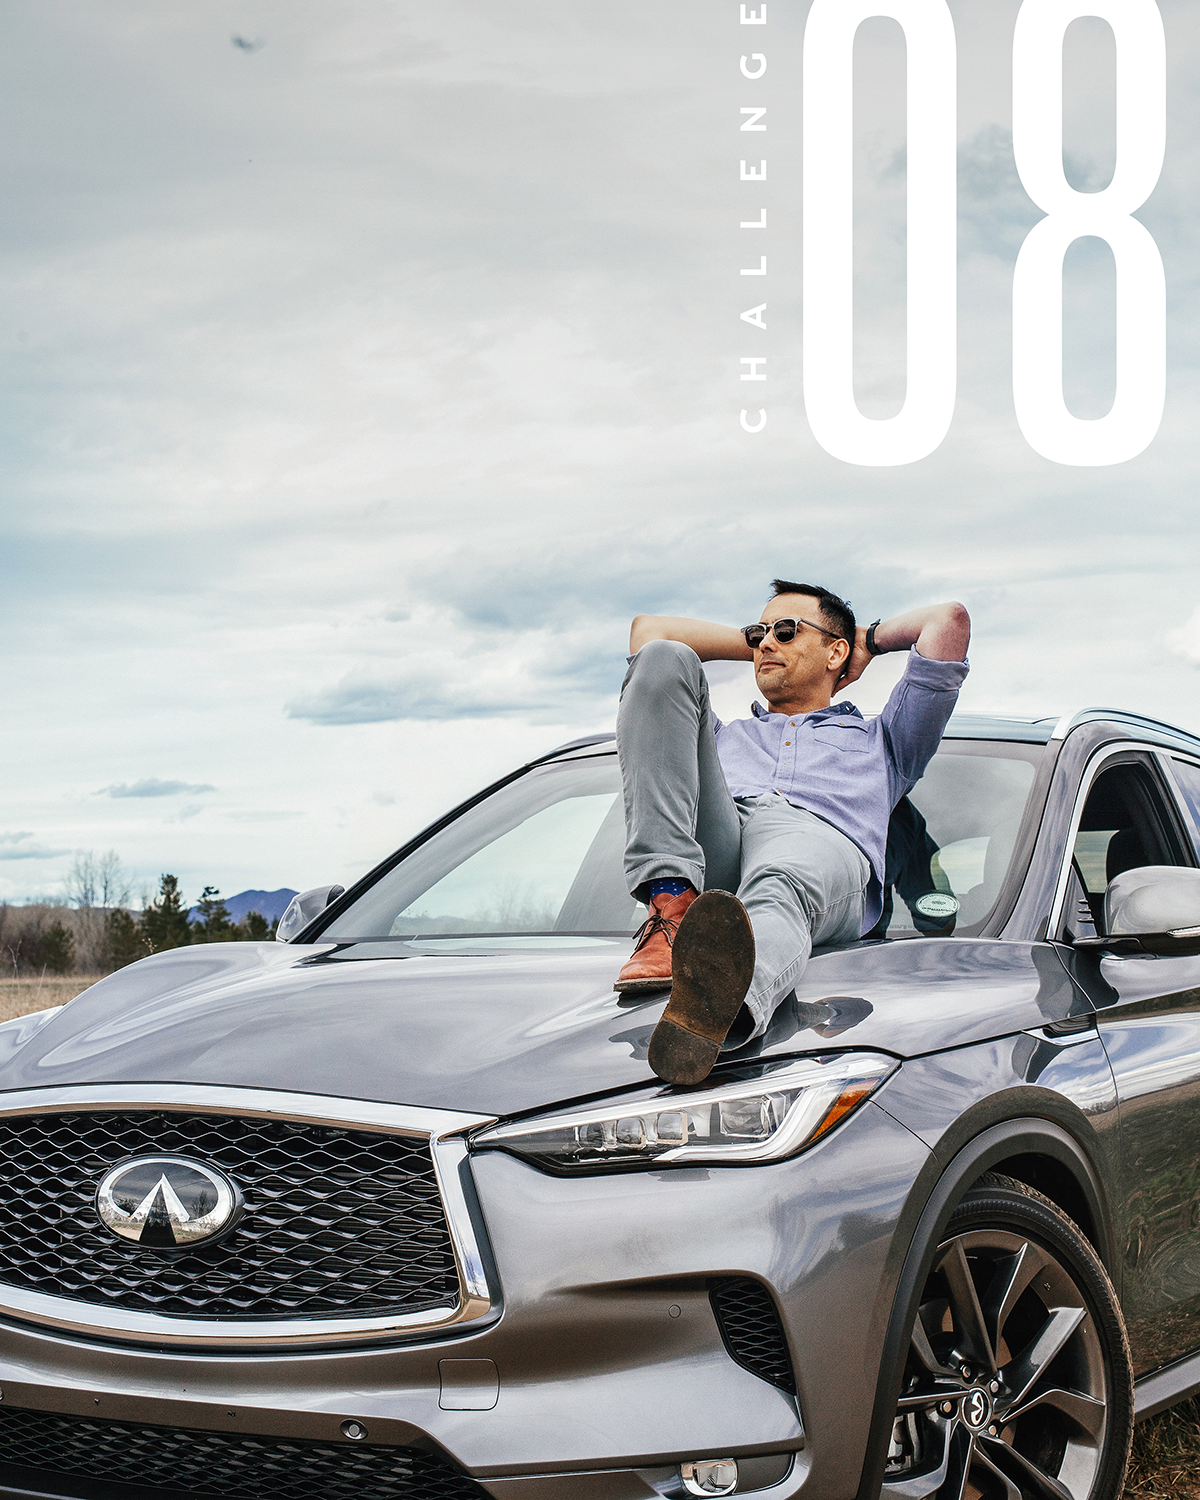 Luxury Should Be Lived In image by INFINITI Canada